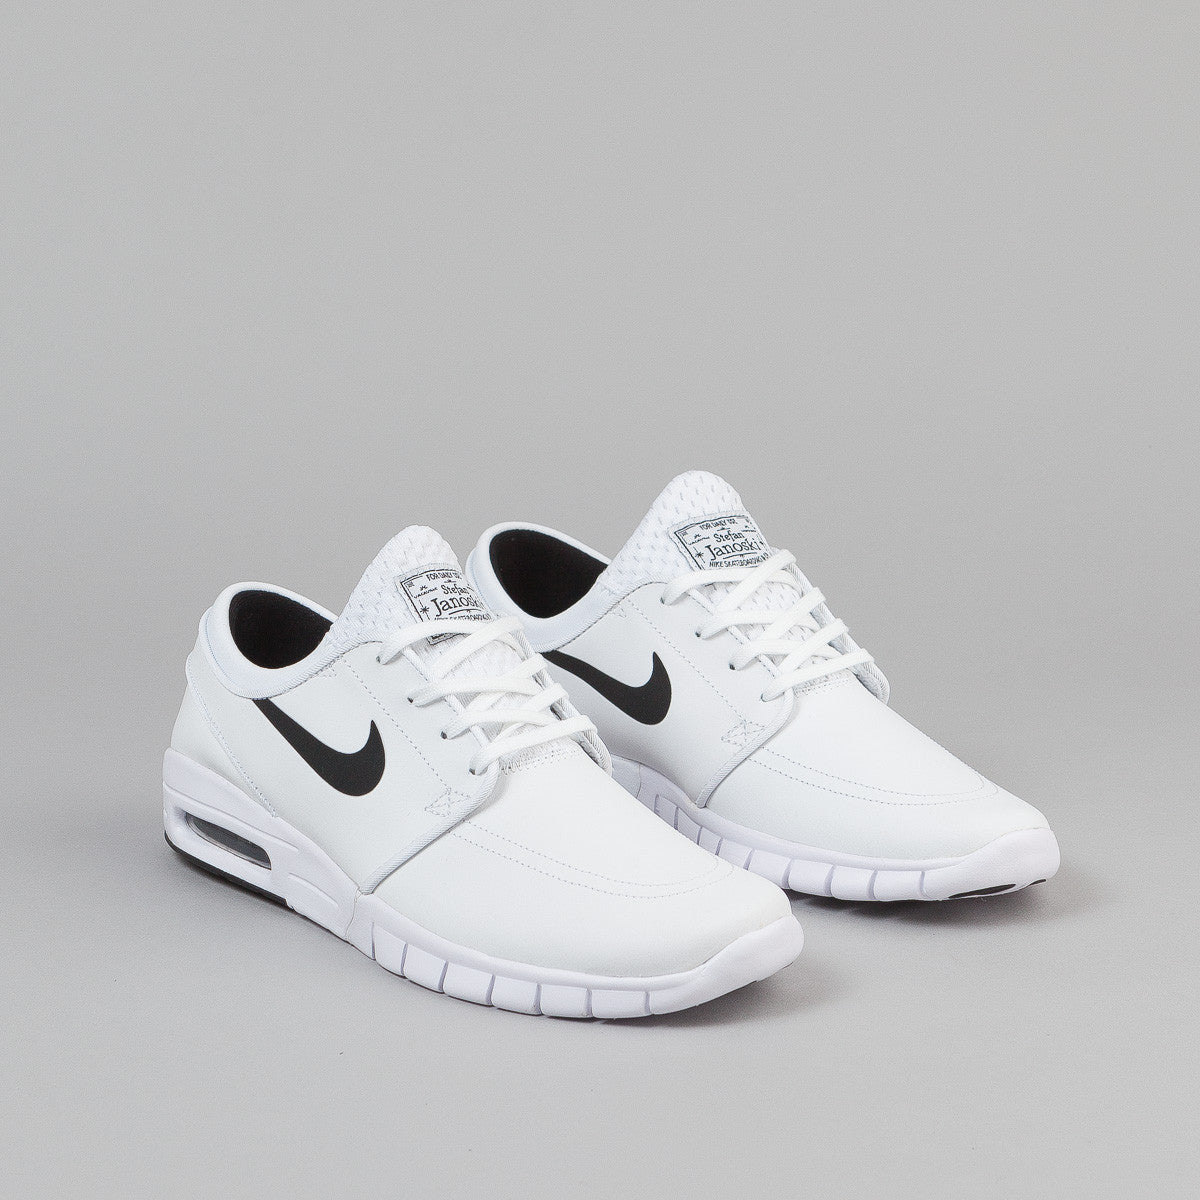 nike sb stefan janoski max leather shoes white black